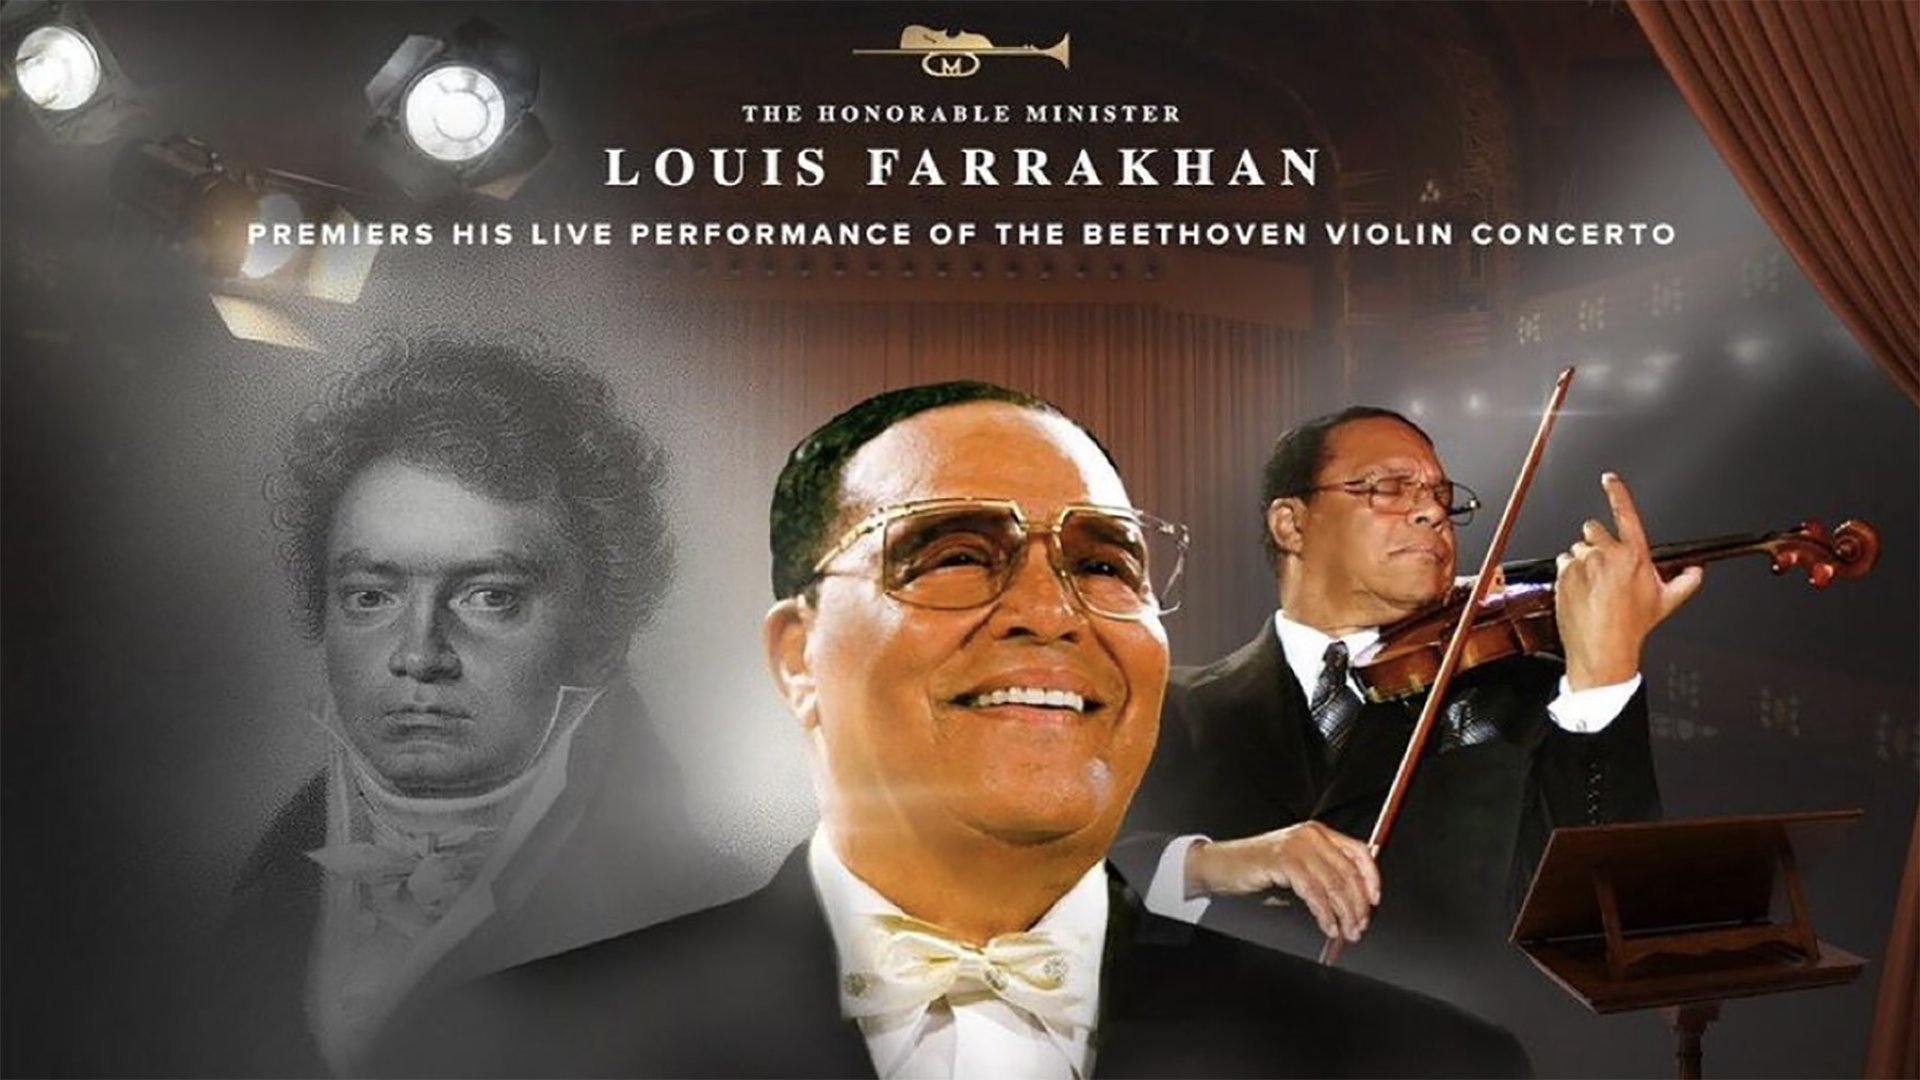 Minister Louis Farrakhan Performs the Beethoven Violin Concerto